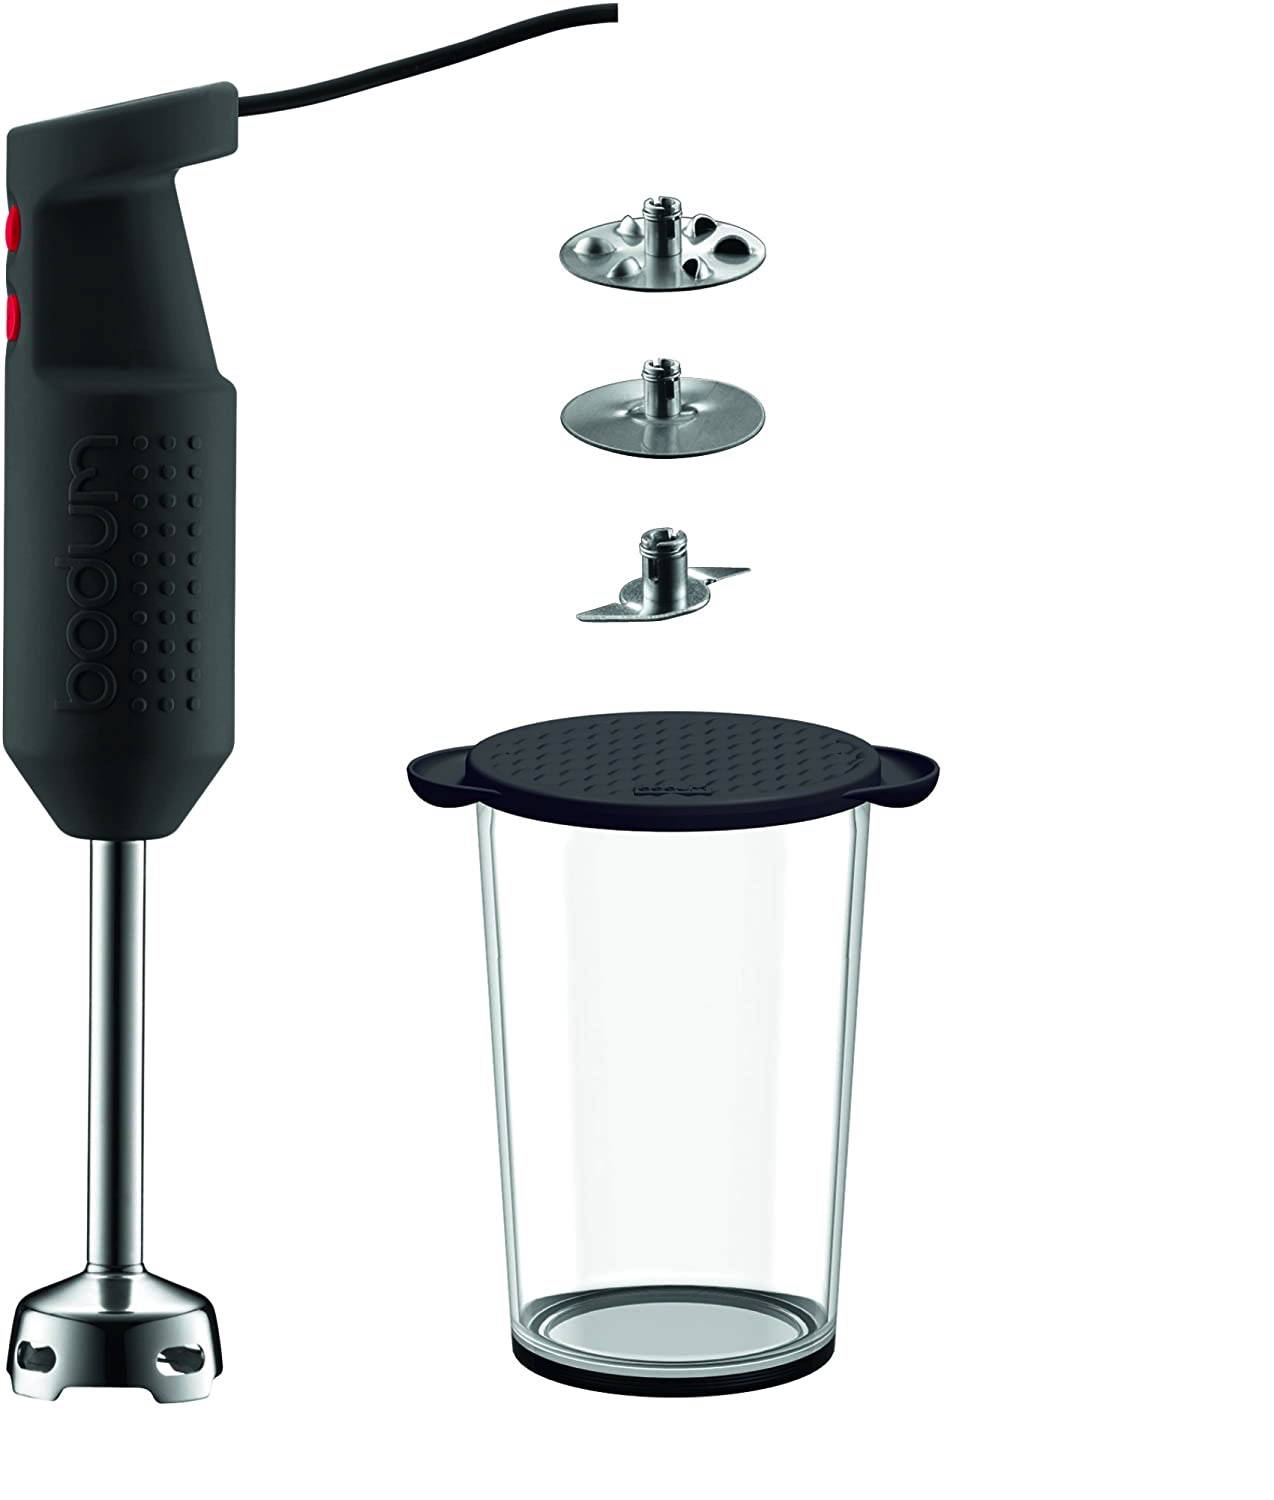 Bodum Birstro Electric Handheld Immersion Stick Blender